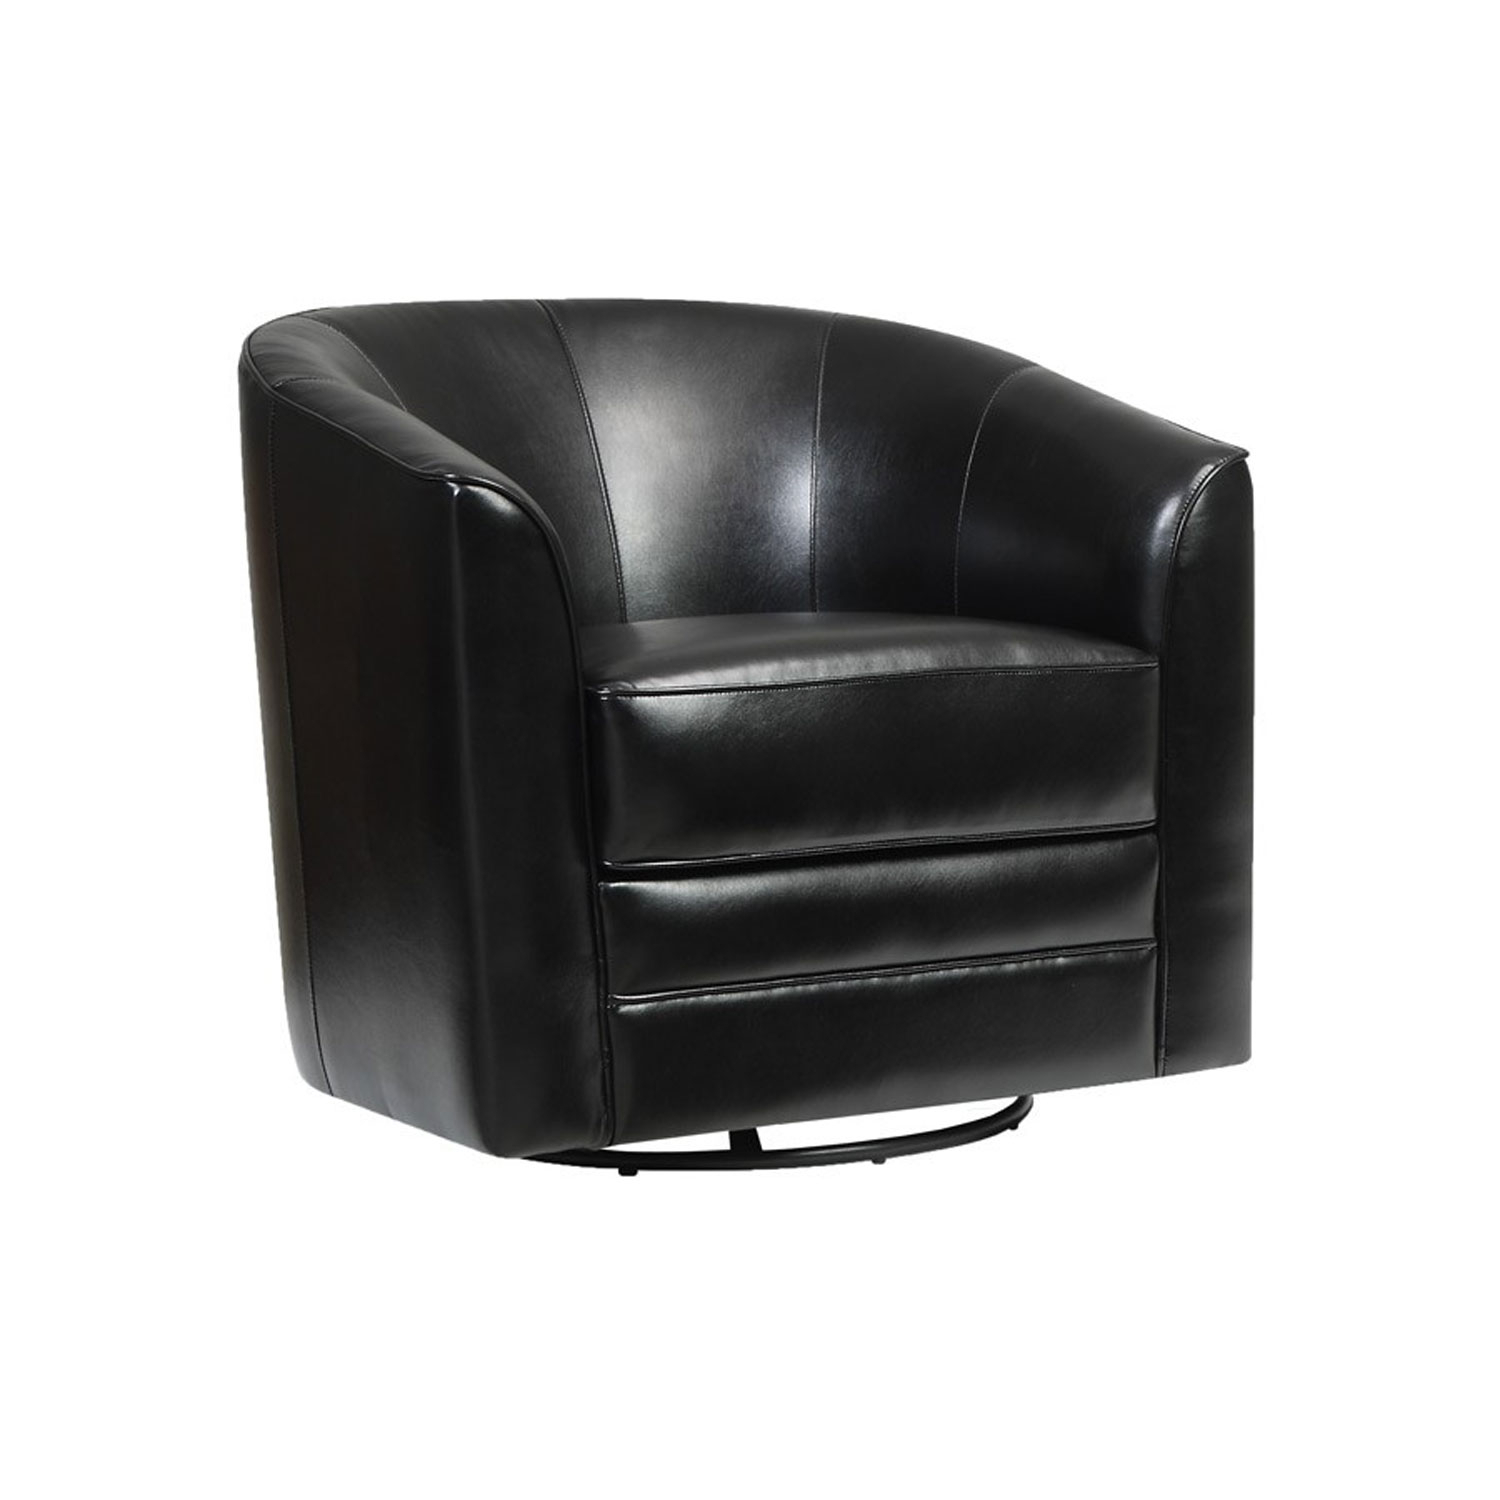 Emerald Home Furnishings Milo Swivel Chair Black U5029C 04 16 | Bellacor For Swivel Tobacco Leather Chairs (View 17 of 20)